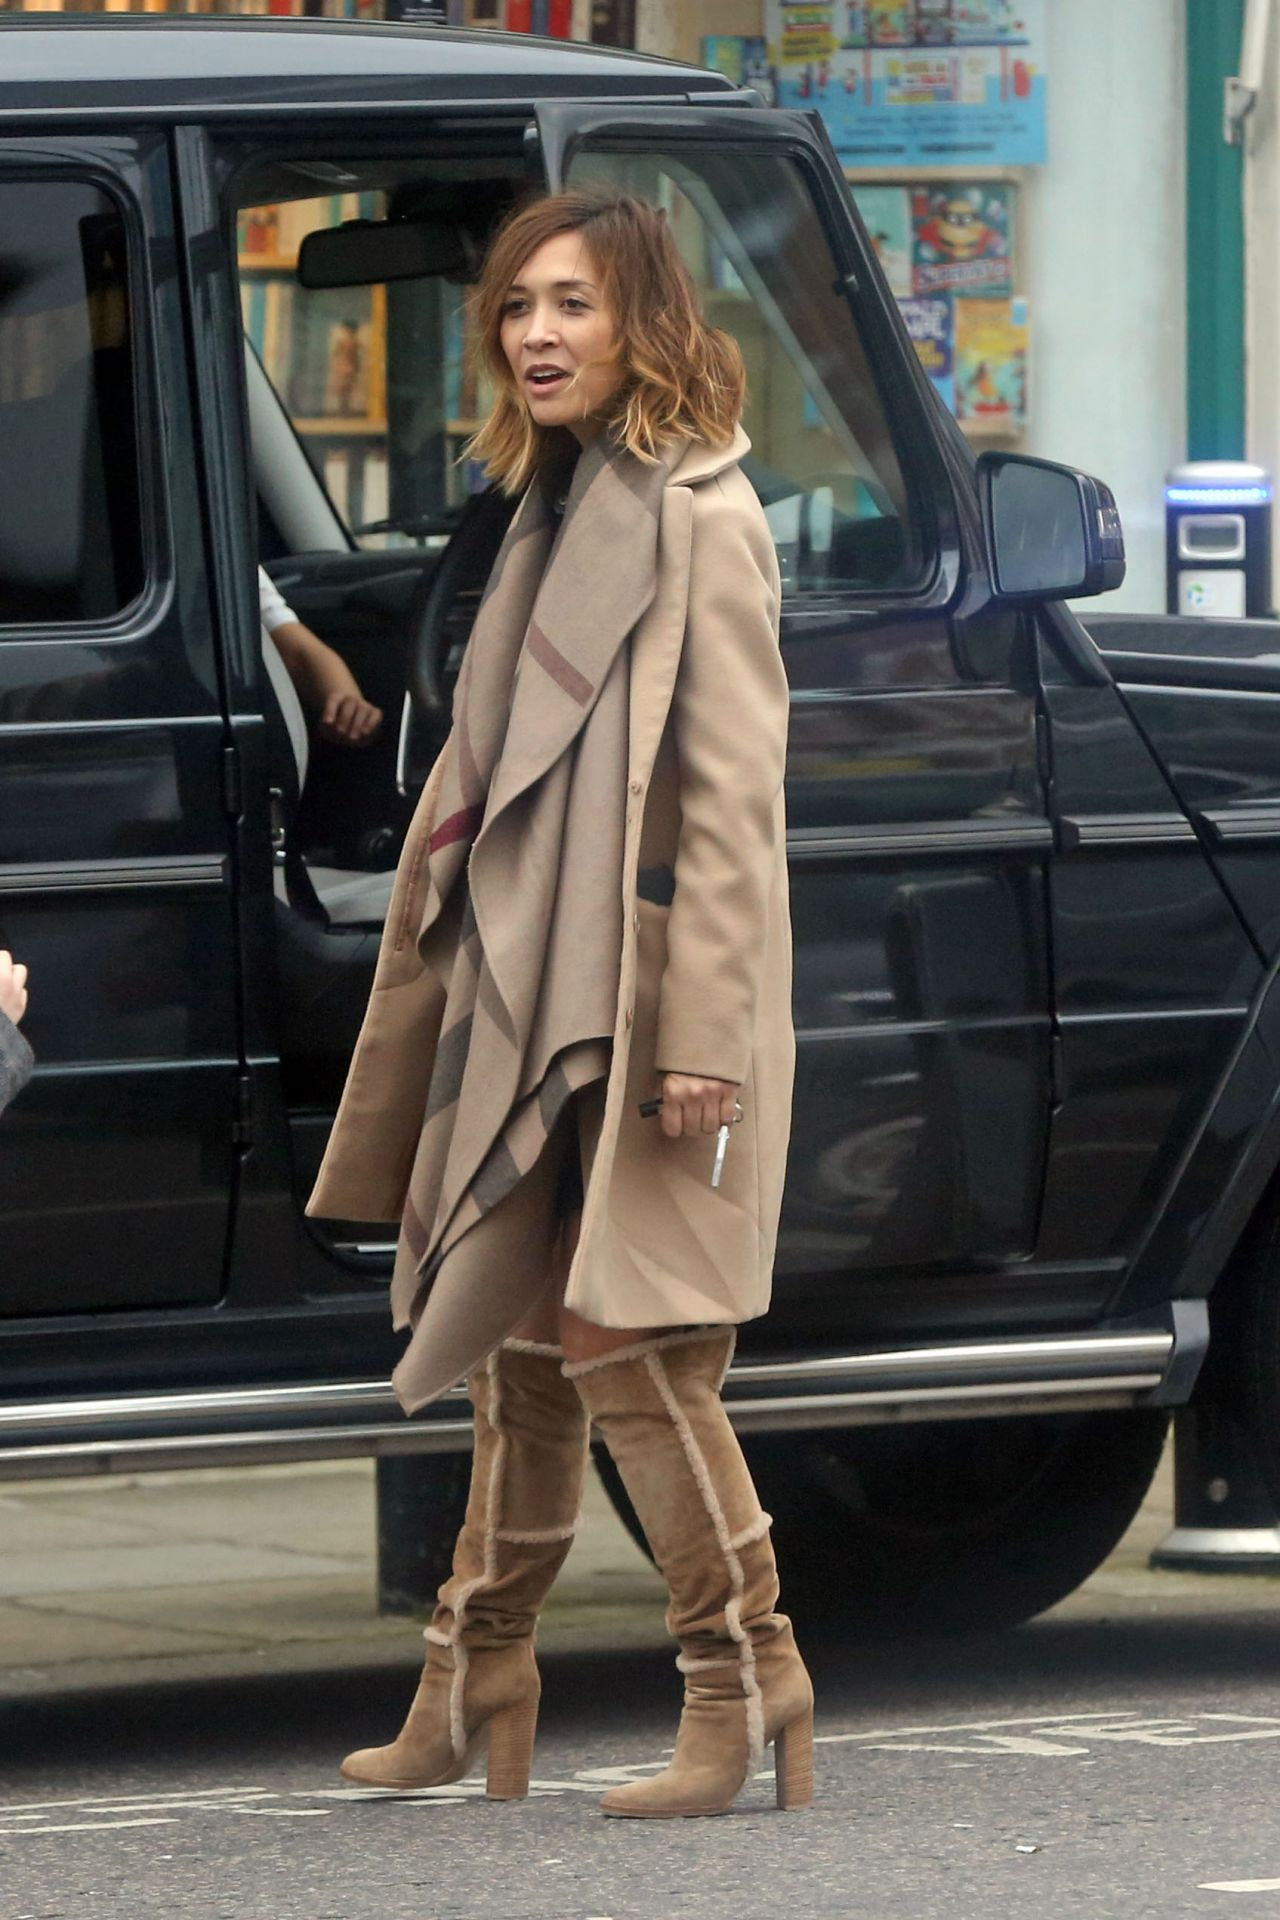 myleene klass highlights her toned legs in brown suede